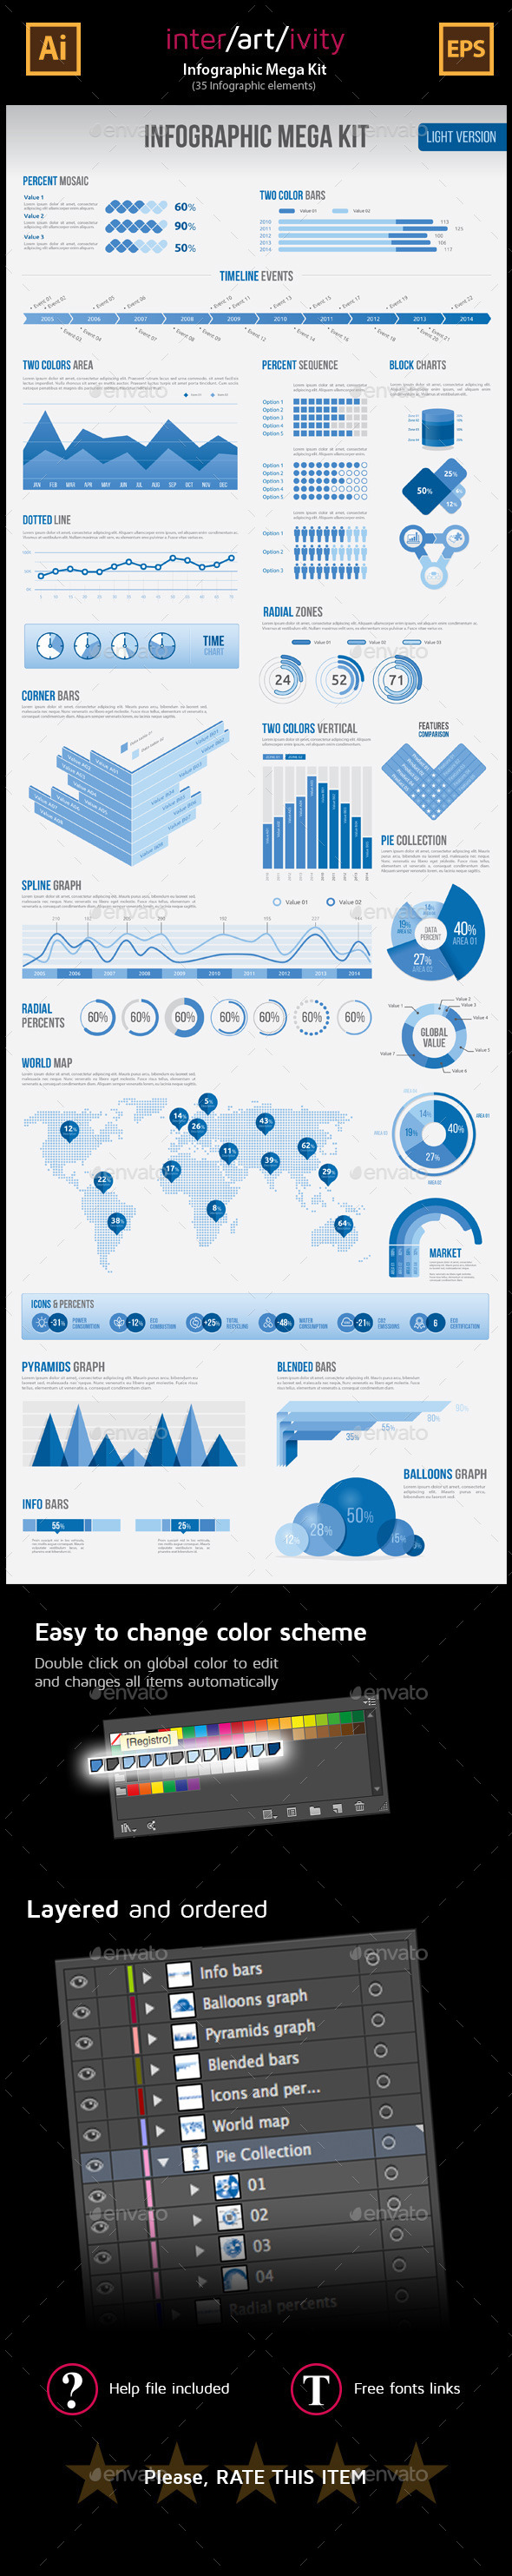 GraphicRiver Infographic MEGA KIT 8791865